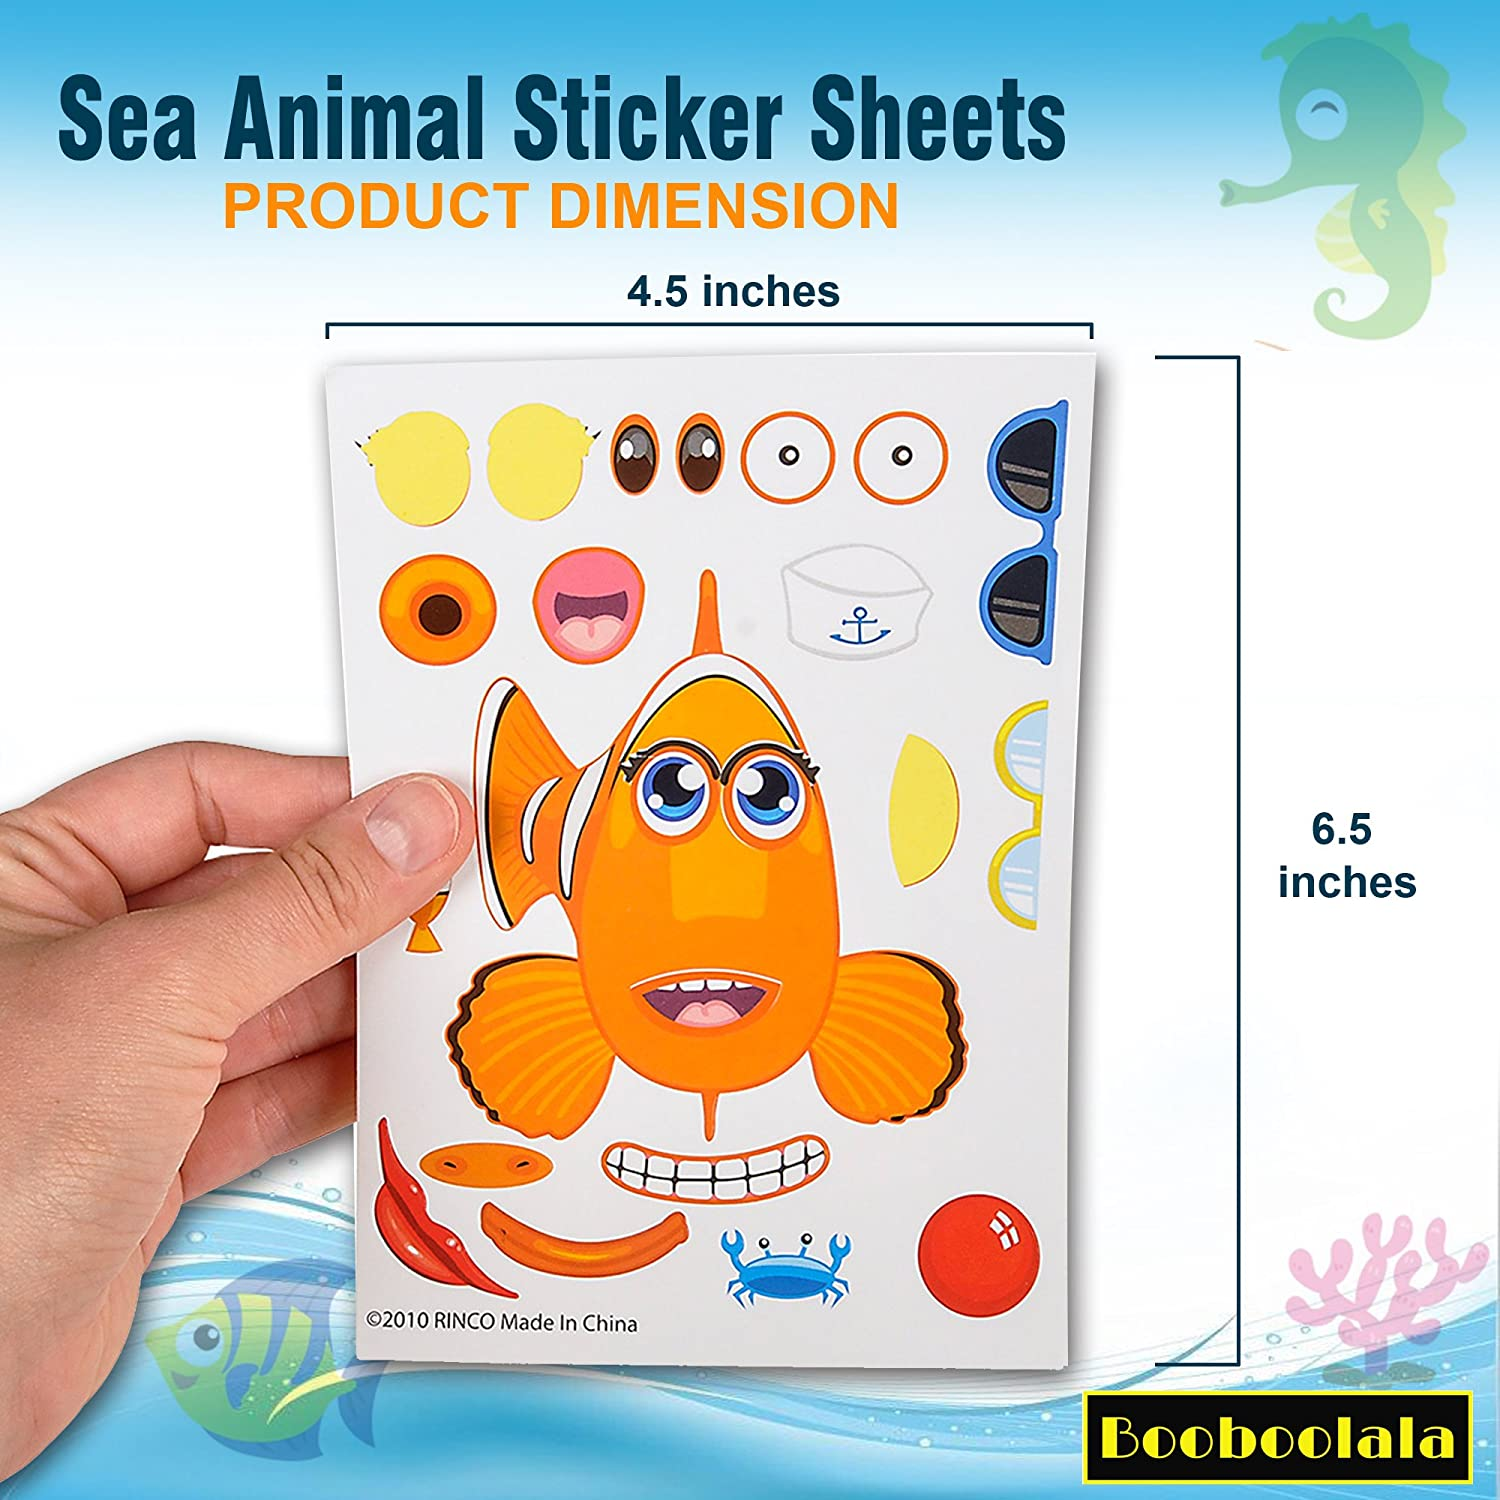 Great for Parties Enhance Your Child/'s Creativity! Booboolala School or Craft Time School or Craft Time Piece Set of Make-Your-Own Sea Sticker Sheets 48 Enhance Your Childs Creativity